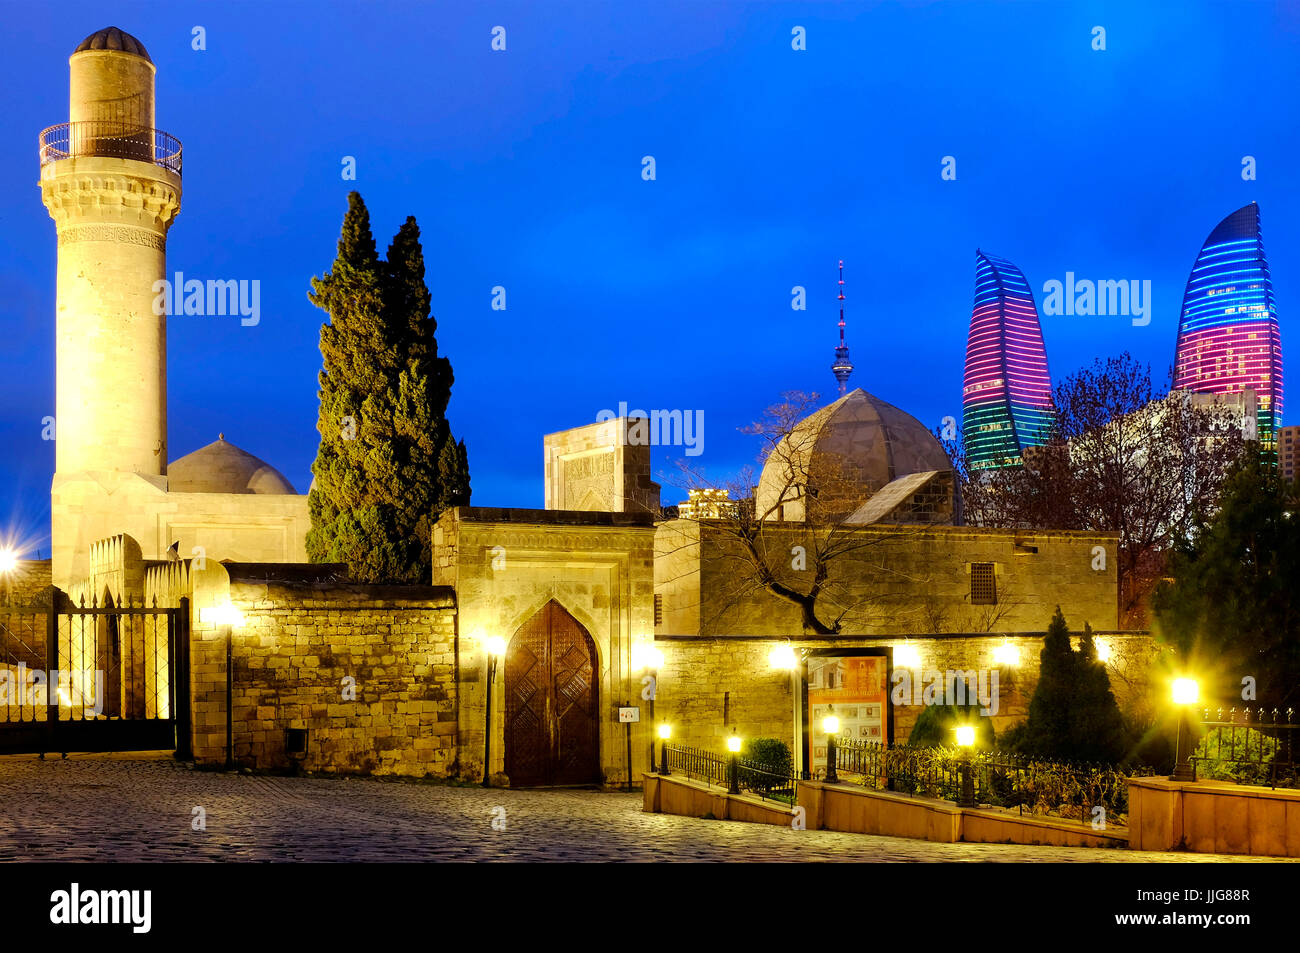 Palace of the Shirvanshahs, Baku, Azerbaijan - Stock Image